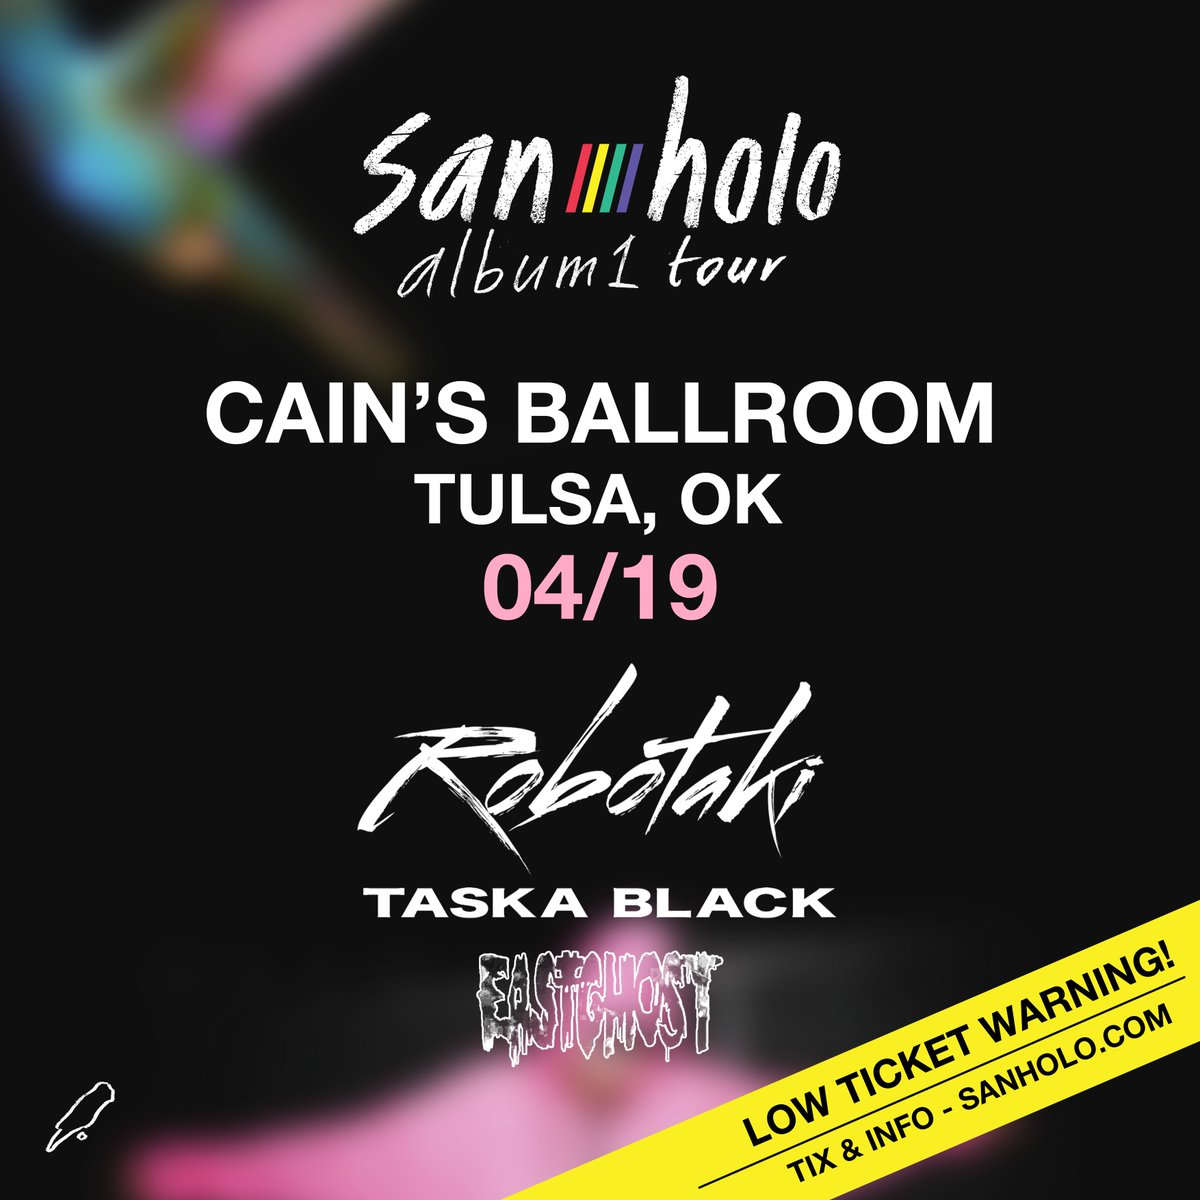 This Friday - April 19th - @sanholobeats #album1tour with special guests @Robotaki @TaskaBlack and @EASTGHOST starting at 8pm.  Get your tickets in advance and don't miss out... https://ticketf.ly/2Mb2Pfn